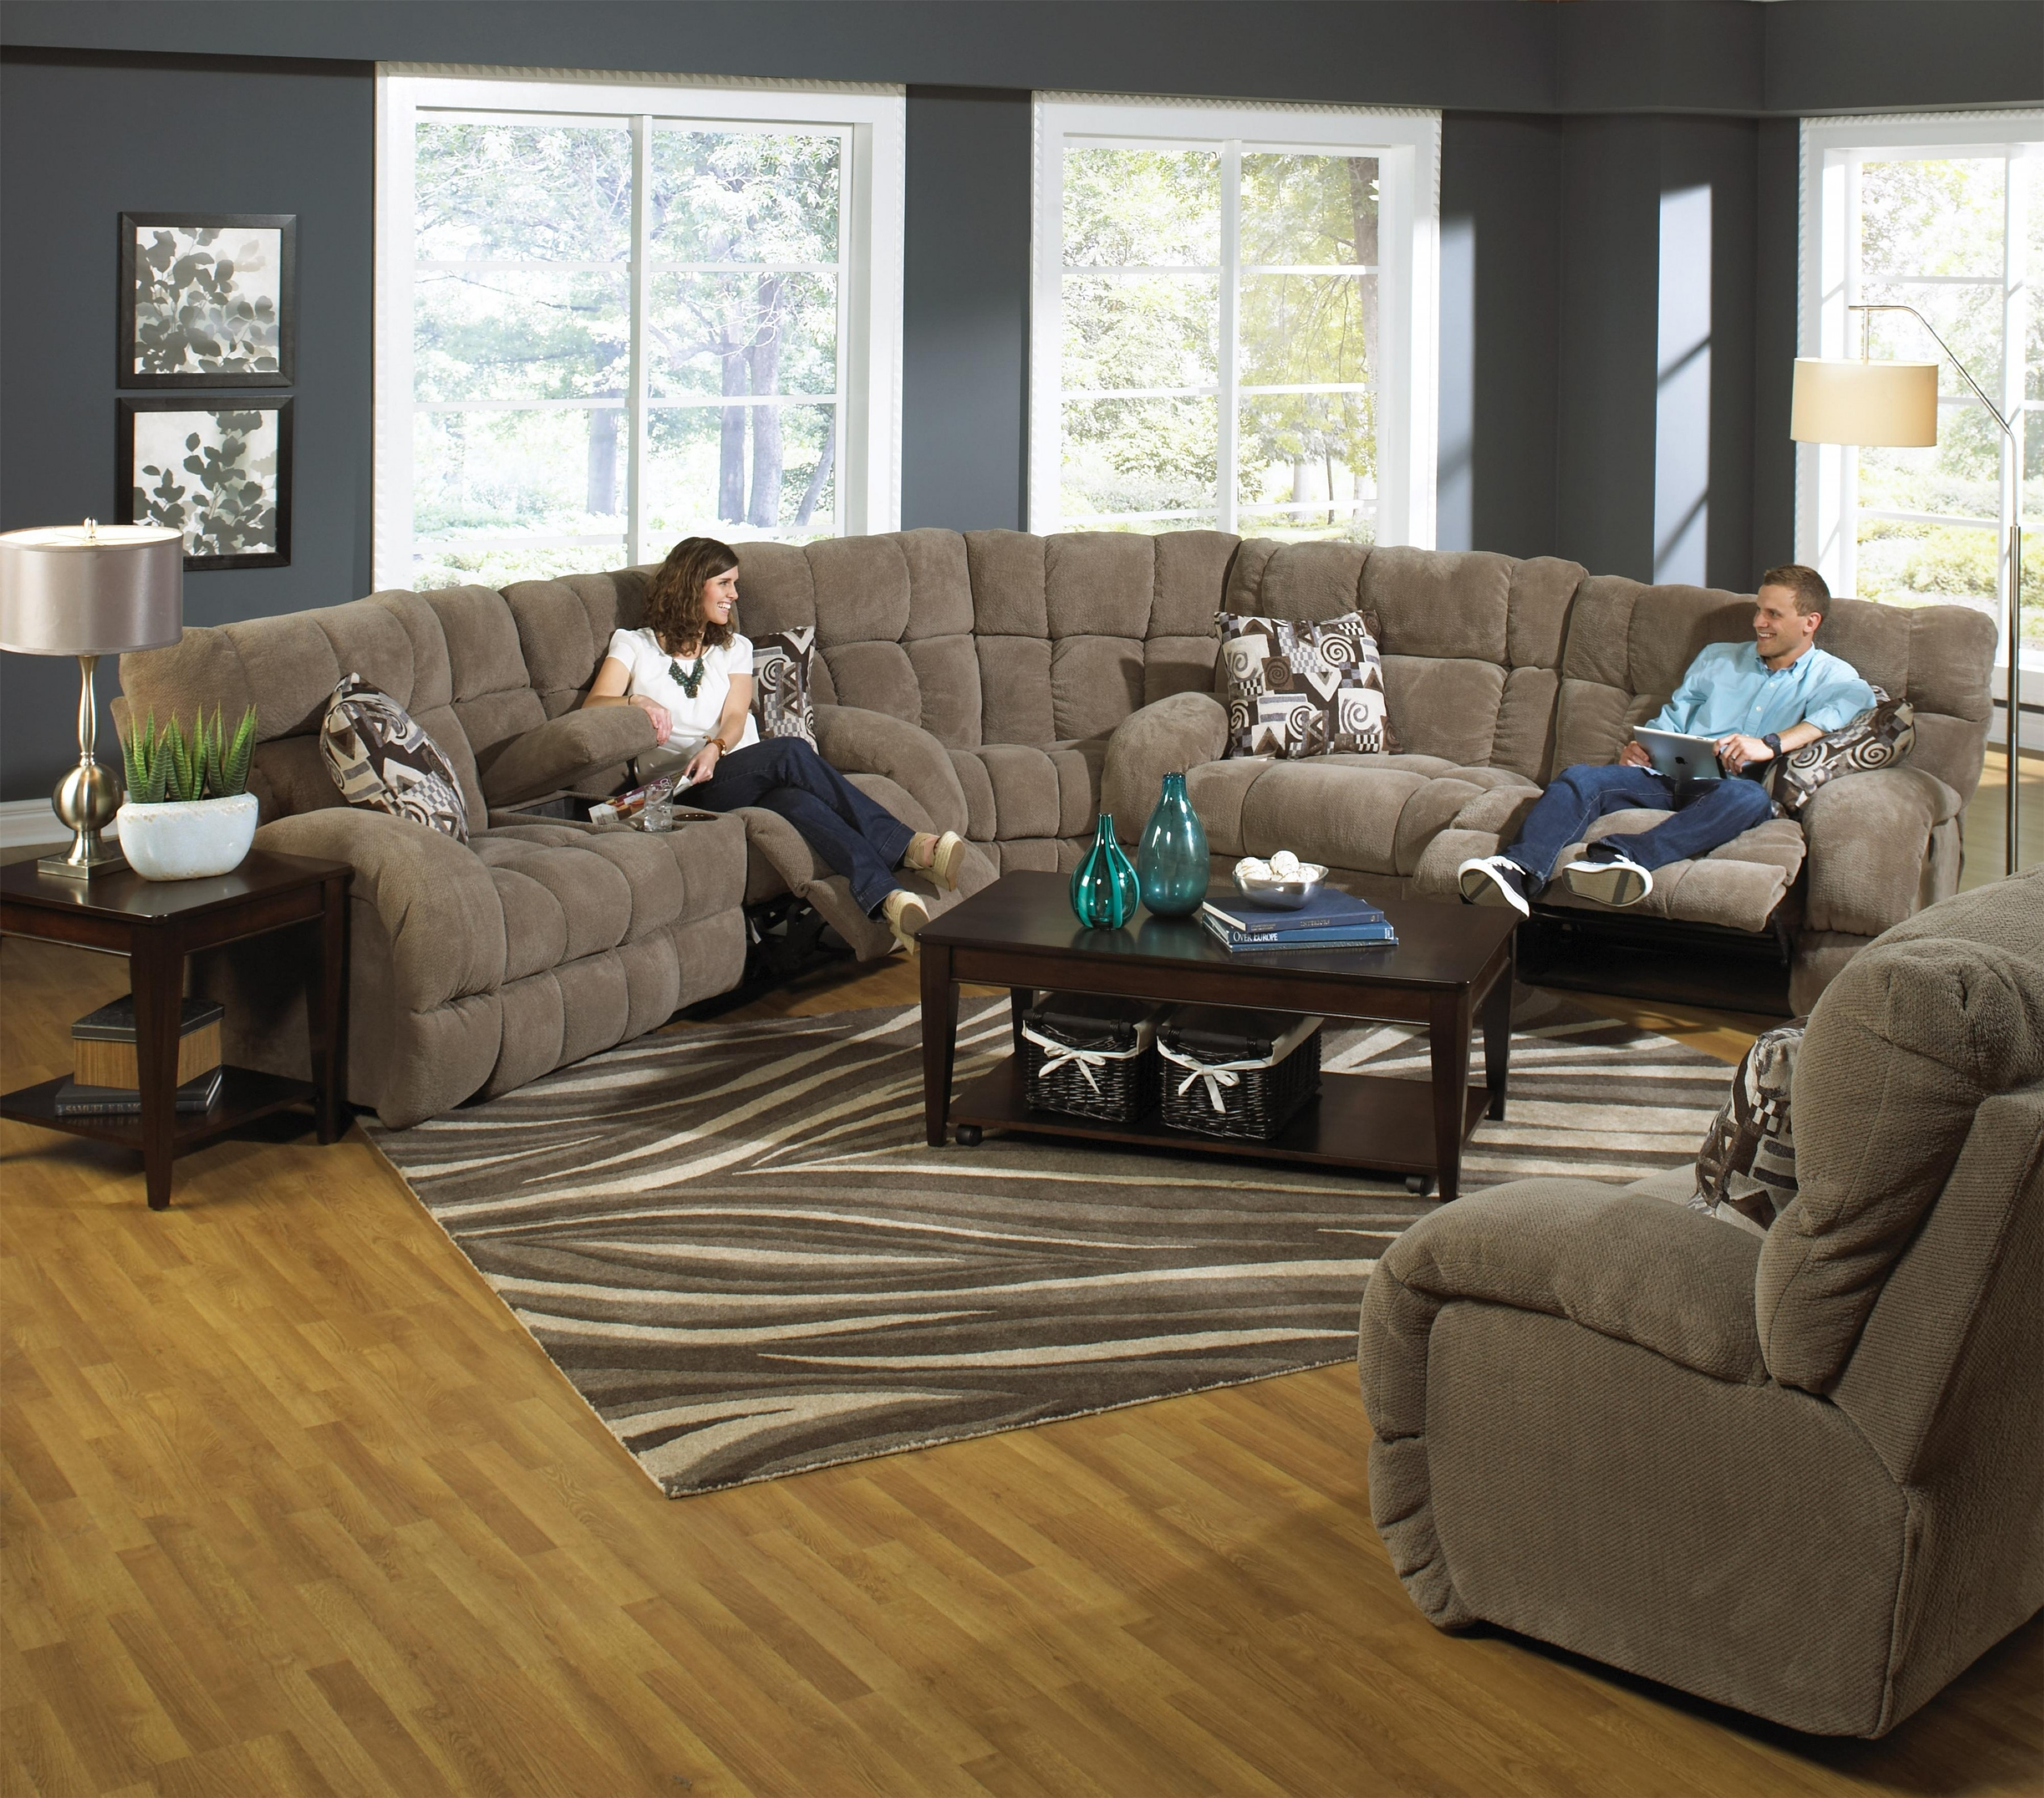 Catnapper Siesta Power Reclining Sectional Sofa With Cup Holders throughout Sectional Sofas With Cup Holders (Image 3 of 10)